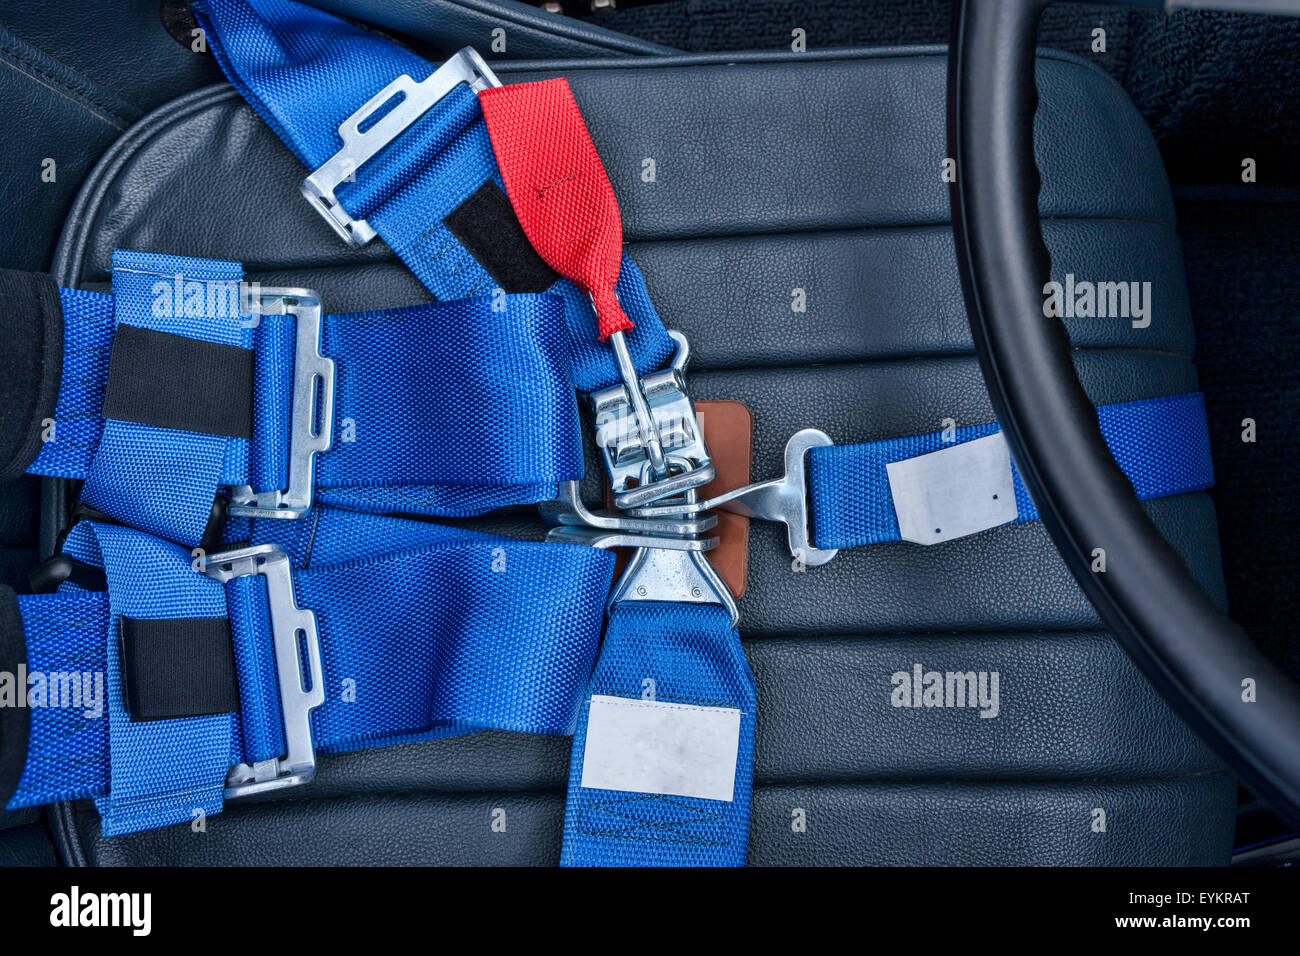 A safety harness for a seat belt. - Stock Image